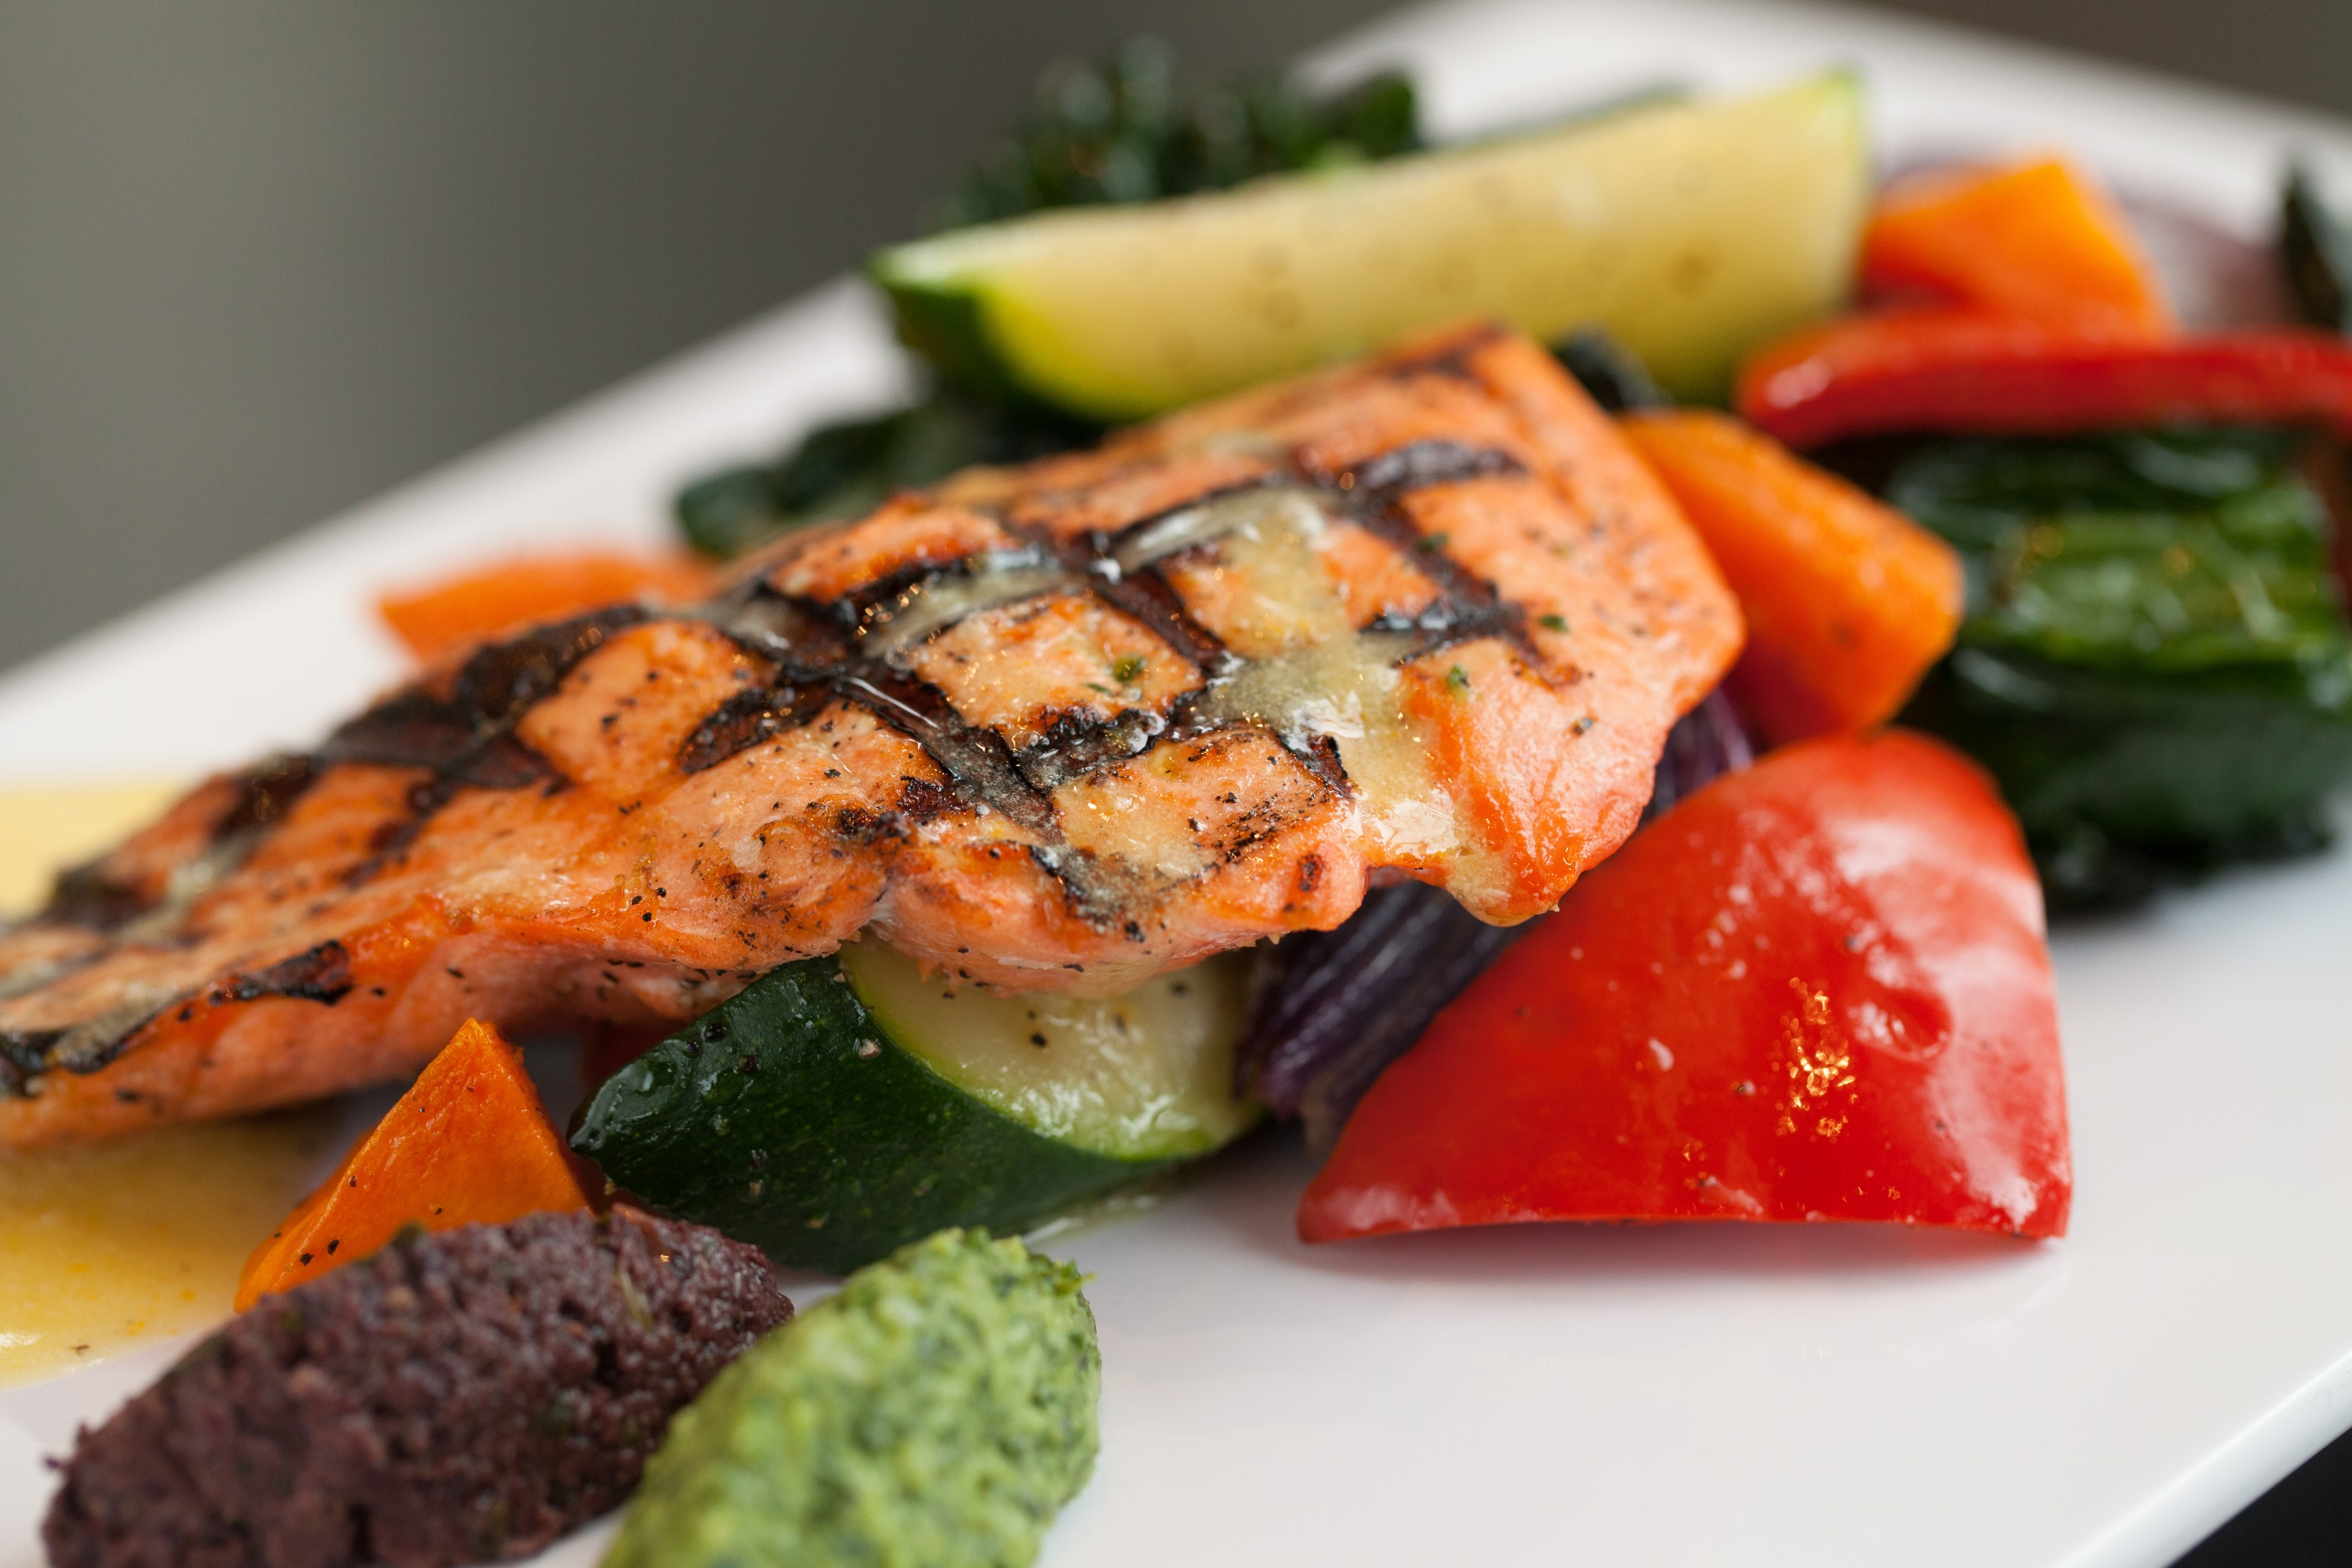 Grilled salmon with fresh veggies at Guest Chef Night